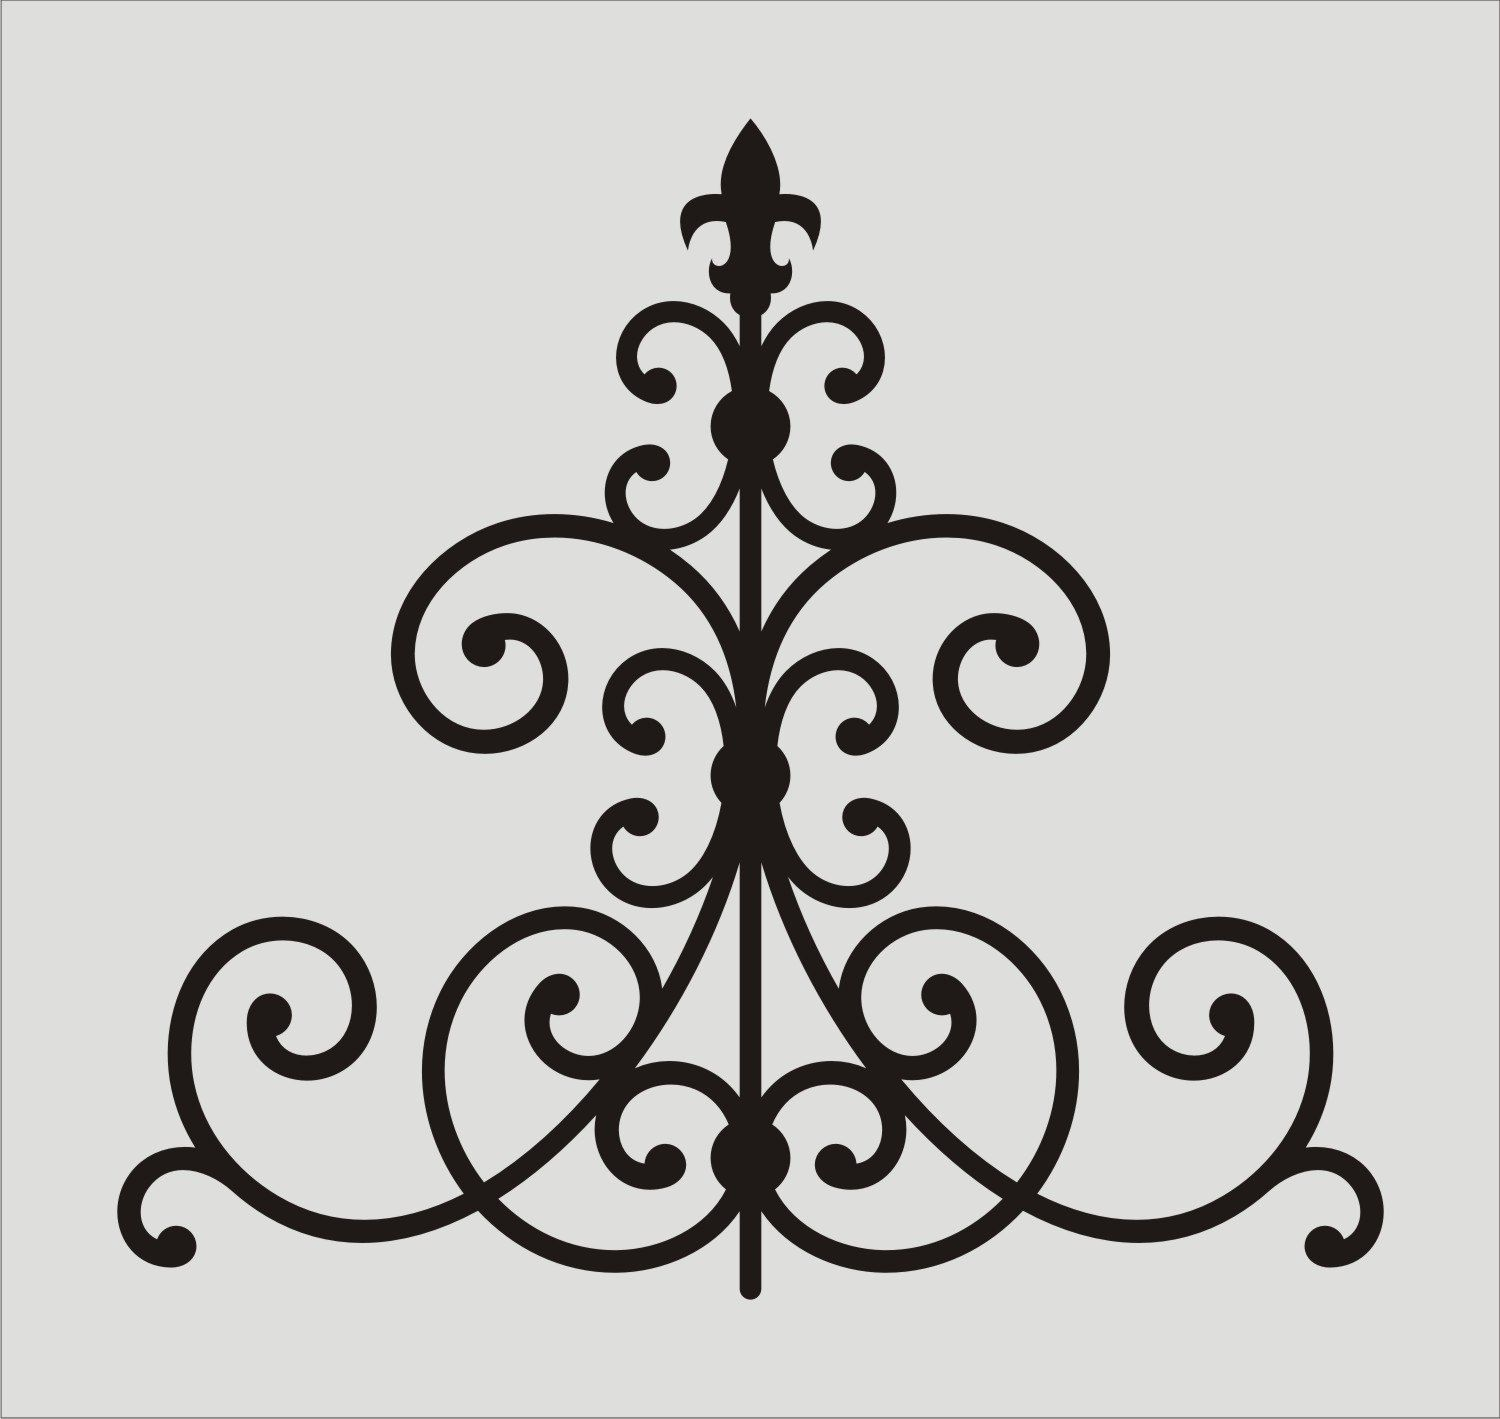 Wrought iron fleur de lis stencil 10 wall stencil damask wrought iron fleur de lis stencil wall stencil damask flourish scroll image is 8 x inches amipublicfo Image collections